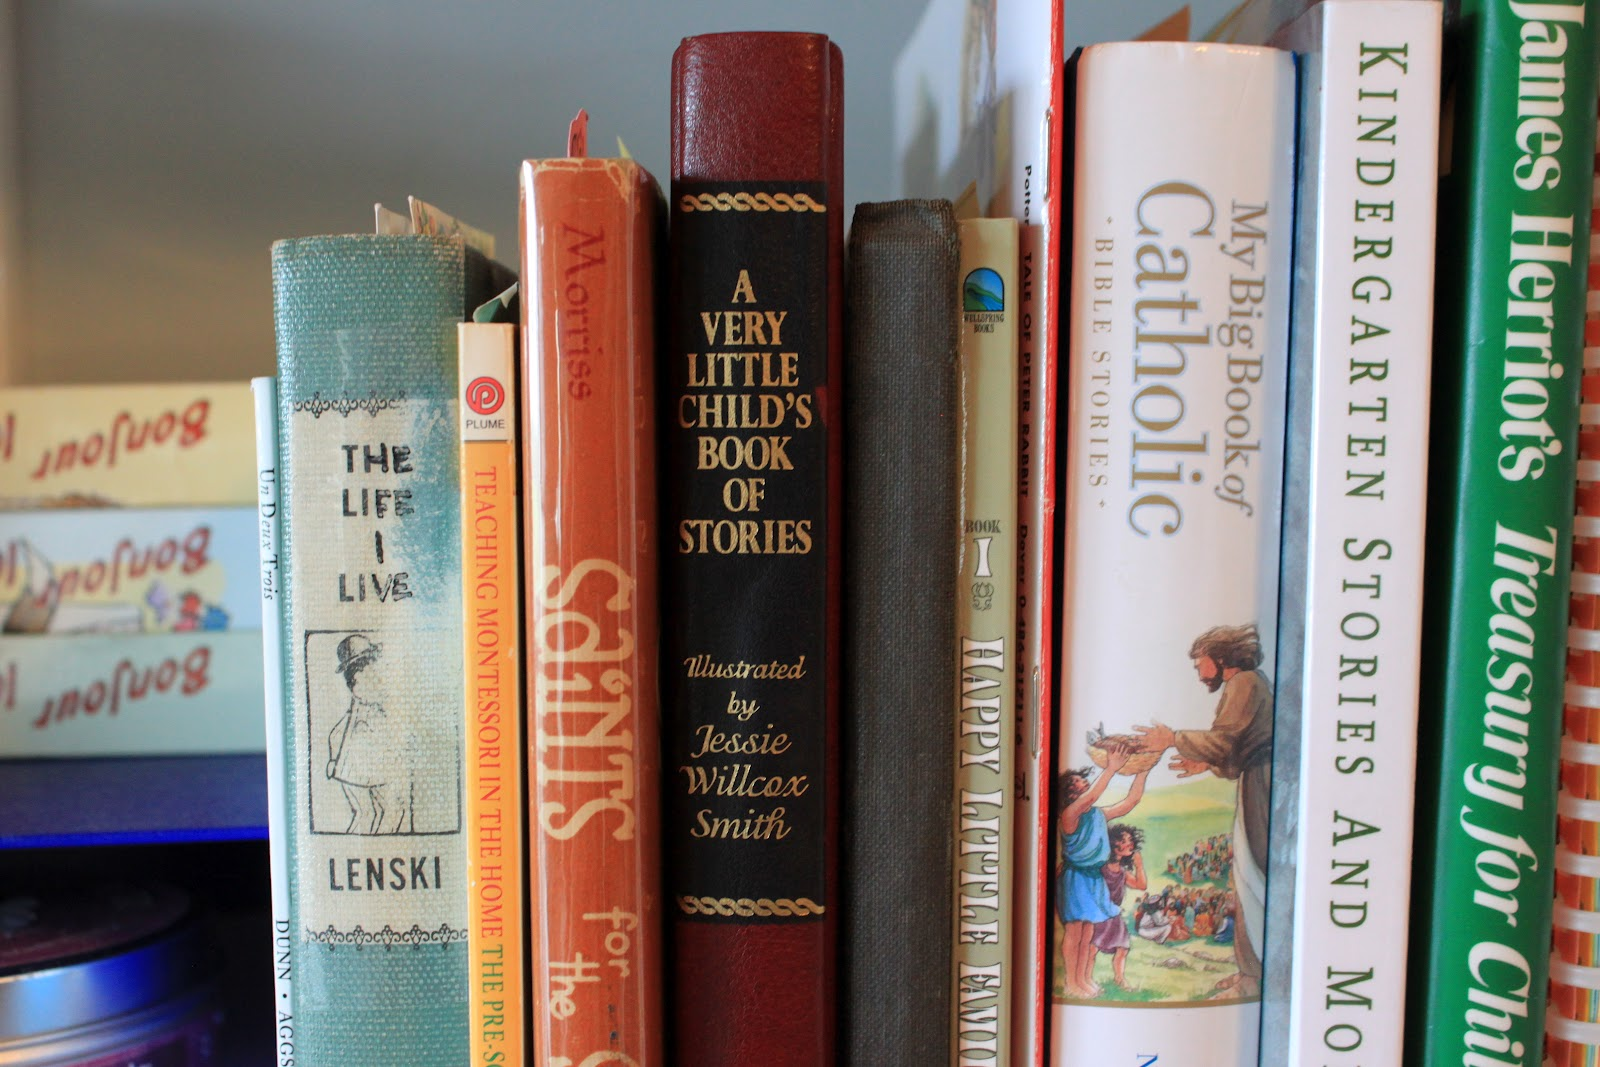 a considered booklist wildflowers and marbles does your preschooler need outside the home classes or opportunities no they need time at your side in the quiet of the home reading wonderful and rich